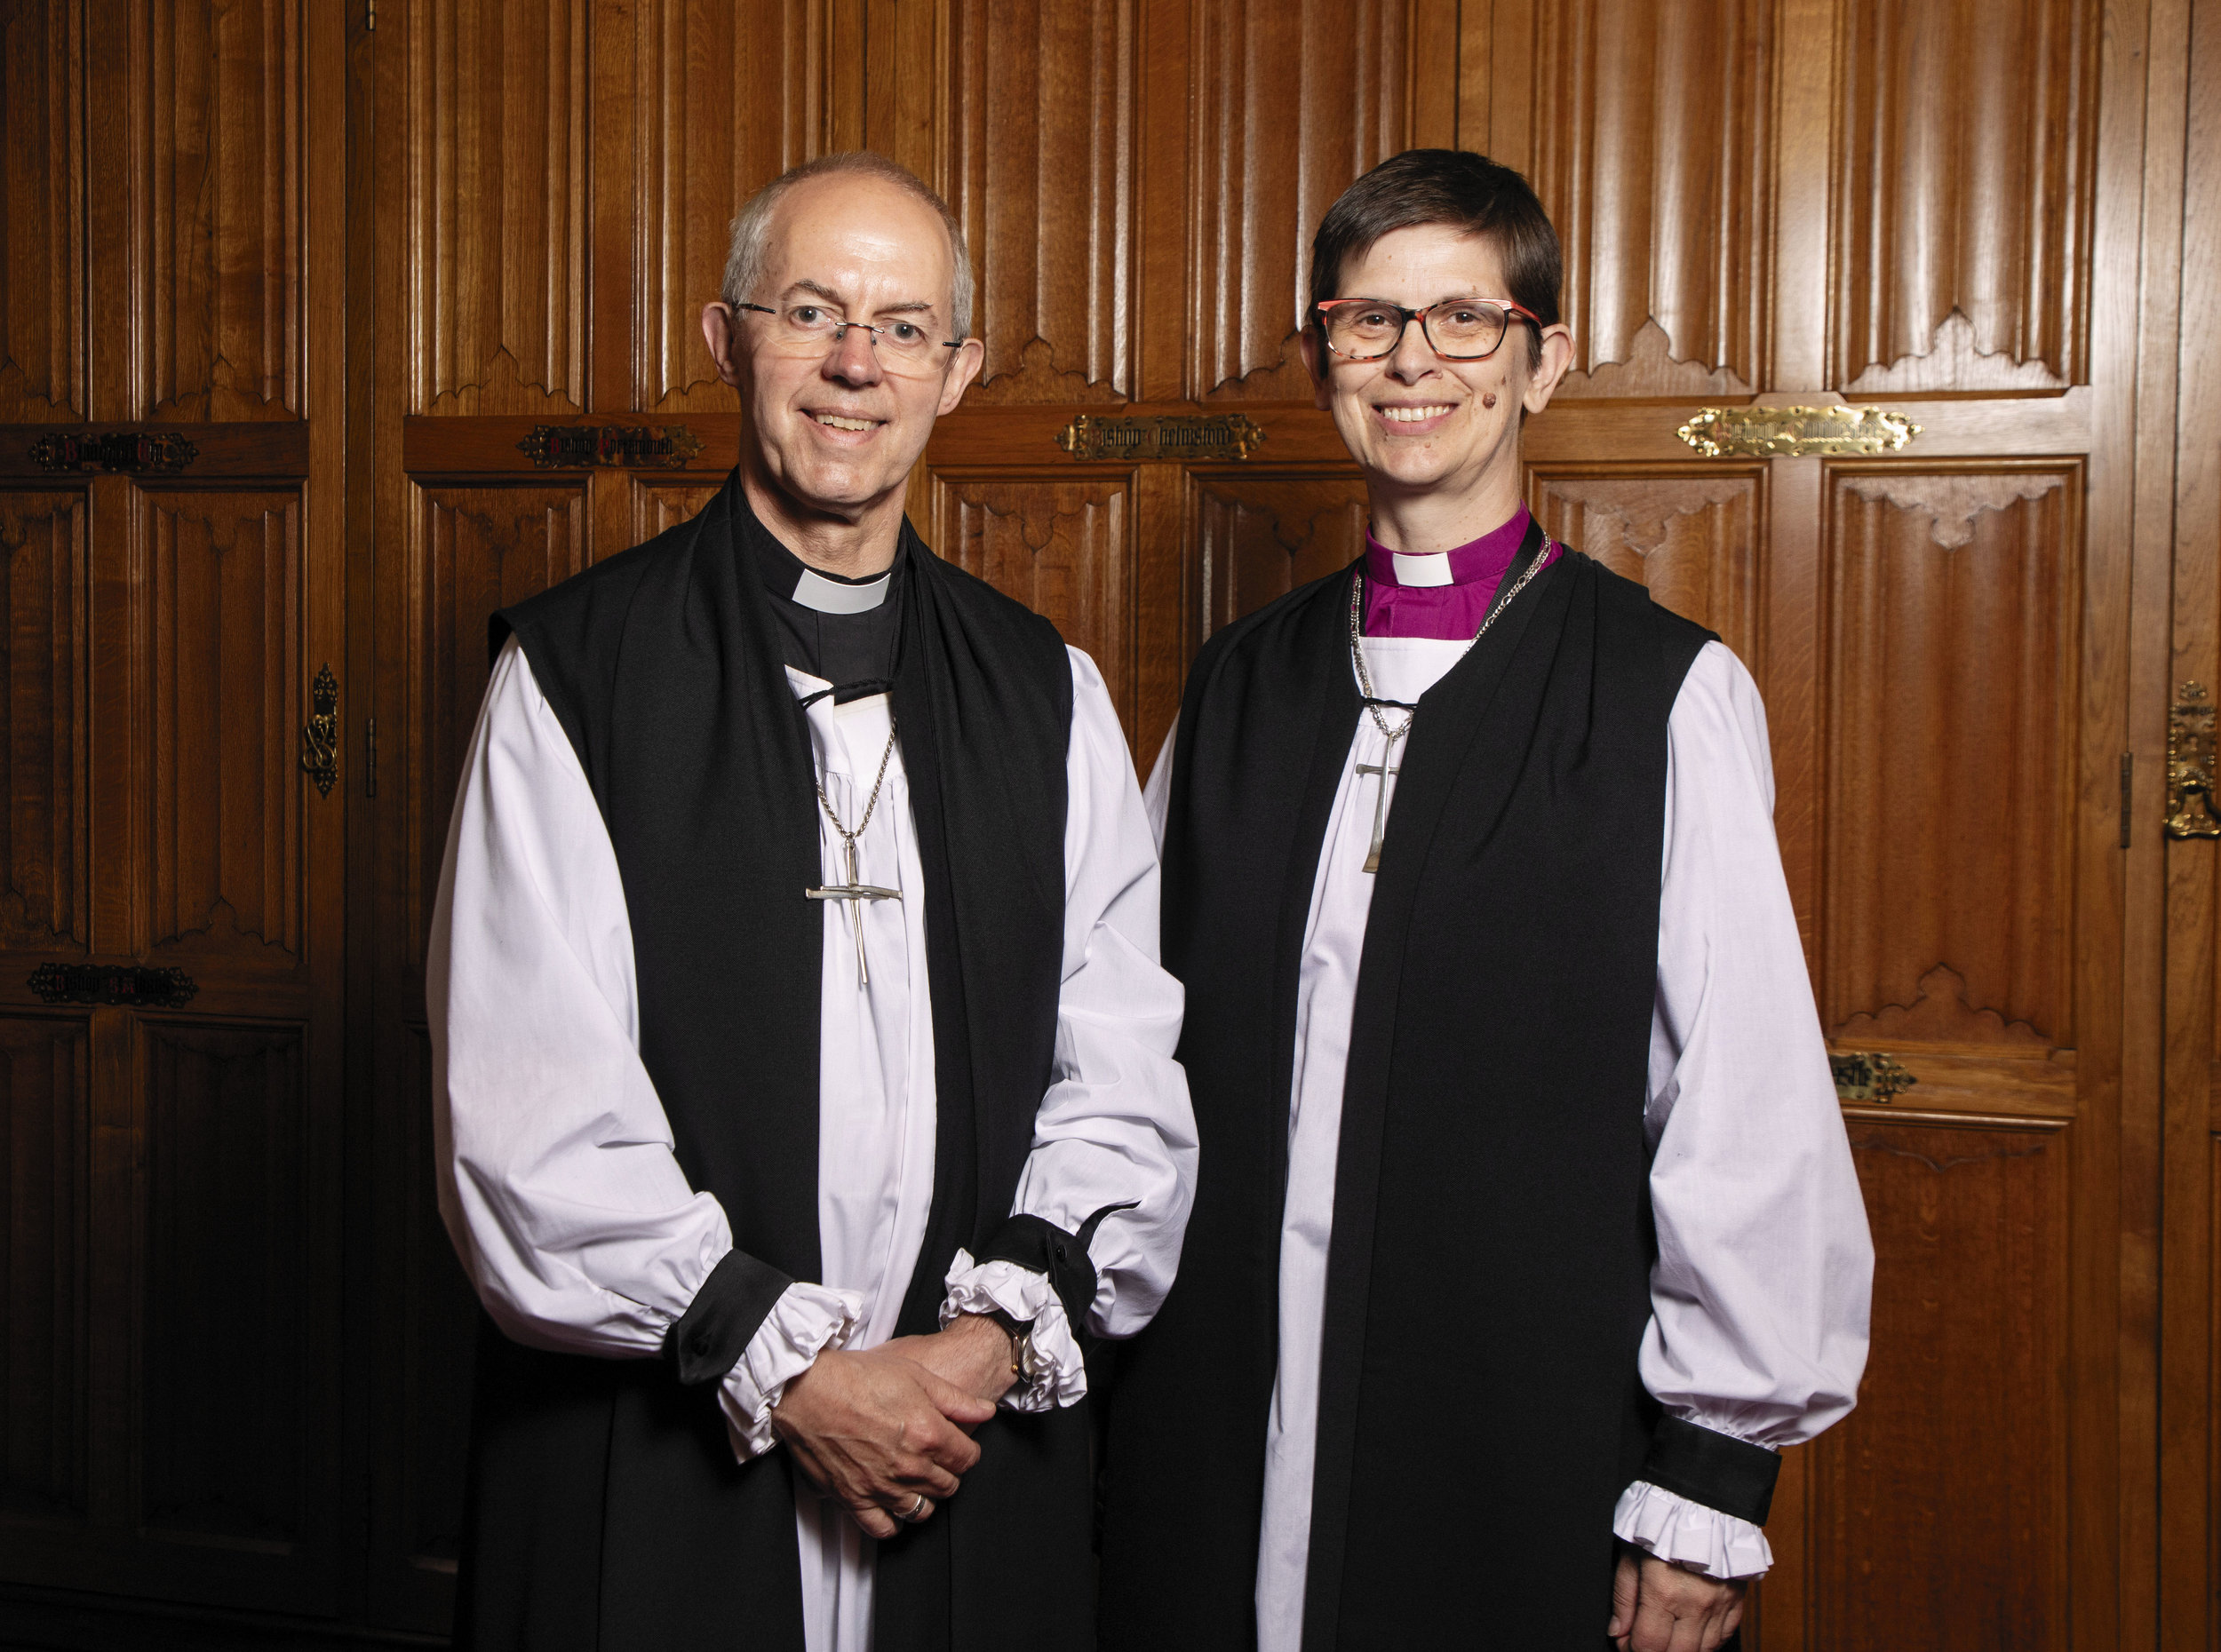 Justin Welby The Archbishop of Canterbury and Libby Lane, Bishop of Derby